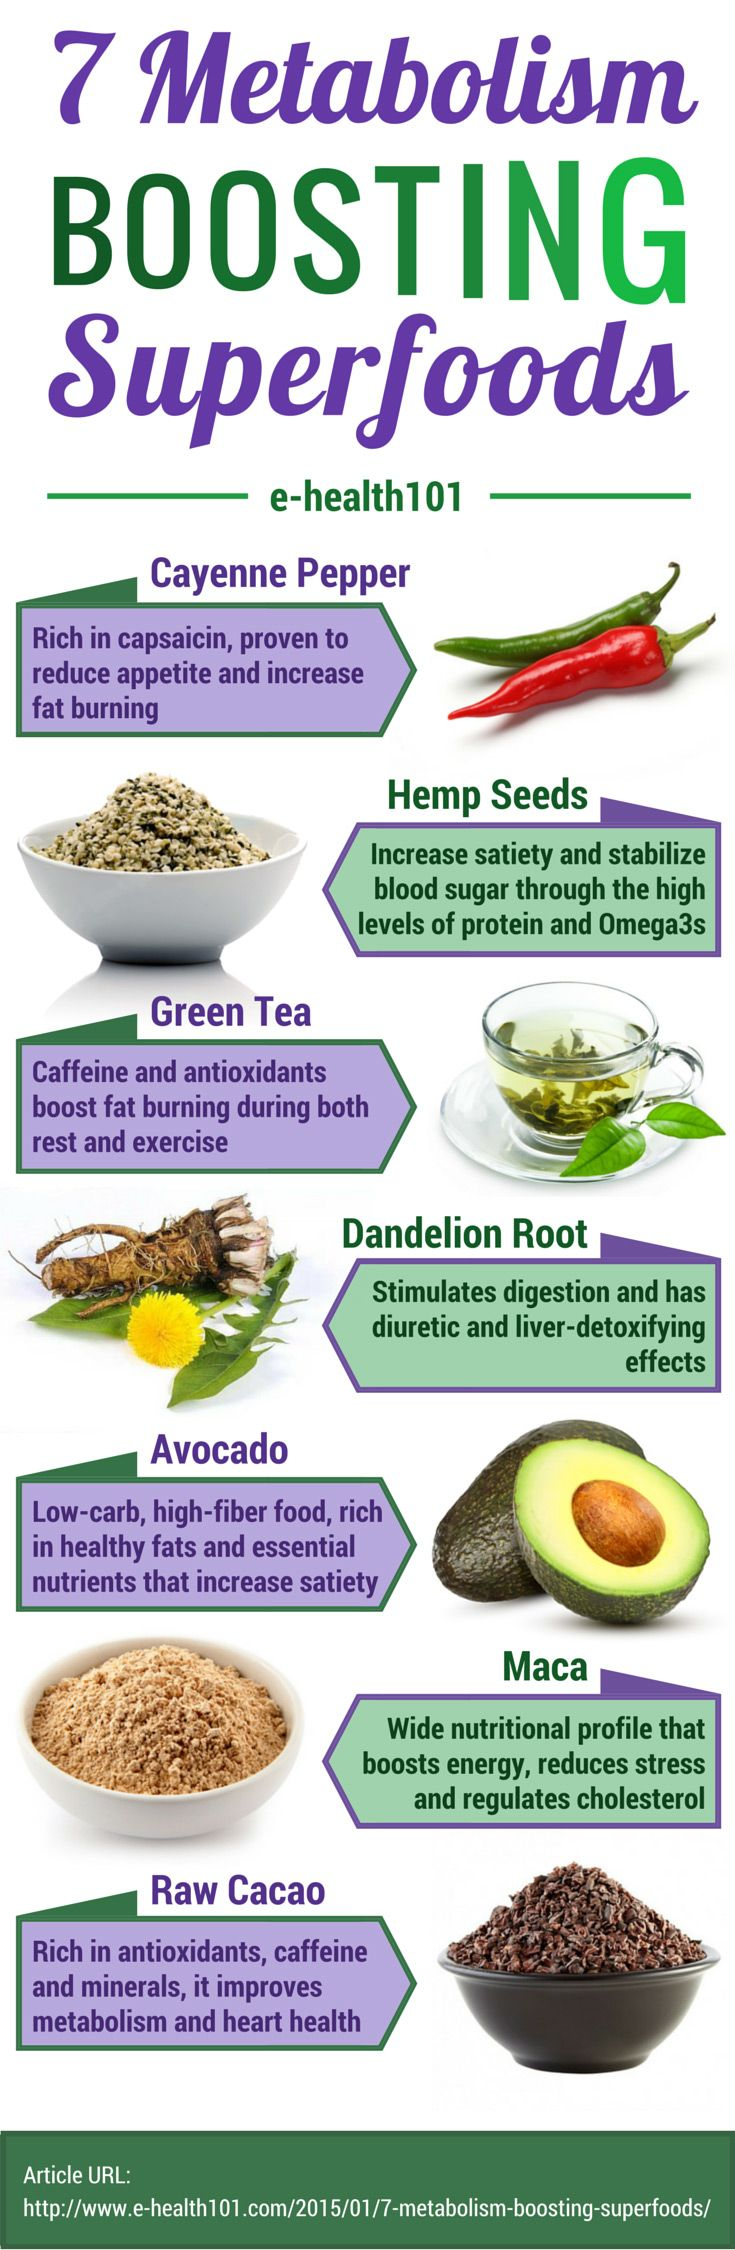 7 Metabolism Boosting Superfoods - These superfoods will boost your metabolism and help you shed those extra pounds faster! #superfoods #weightloss